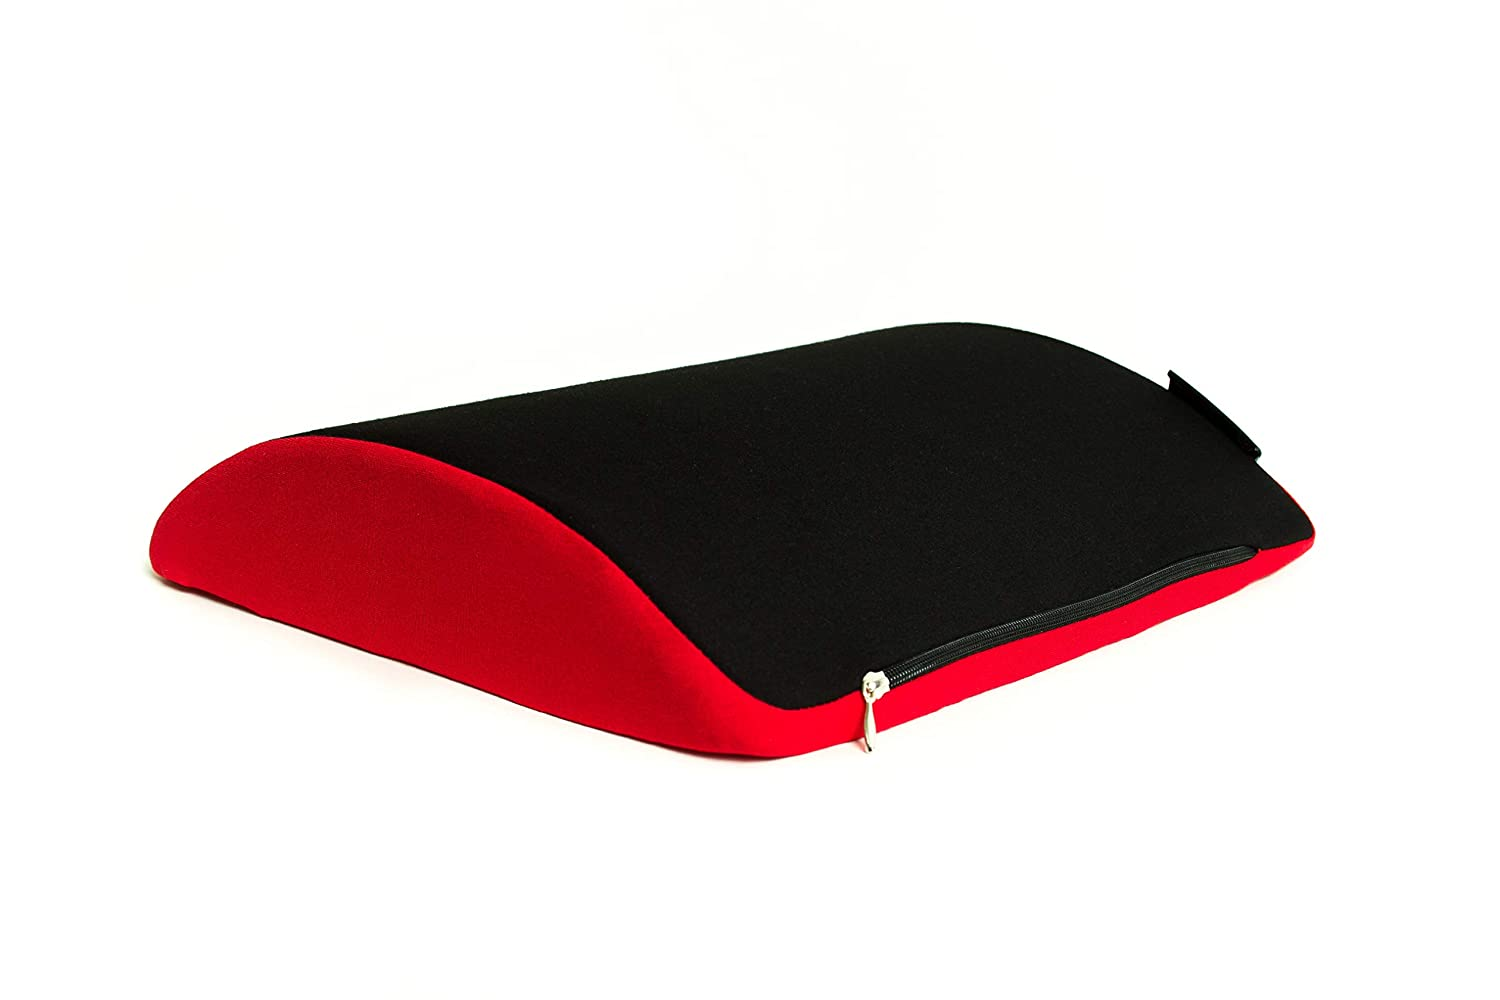 and Car Seat Lower Back Cushion Soft Ergonomic Men and Women Portable Office Chair Igloo4travel Memory Foam Lumbar Support Pillow Orthopedic Comfort Home